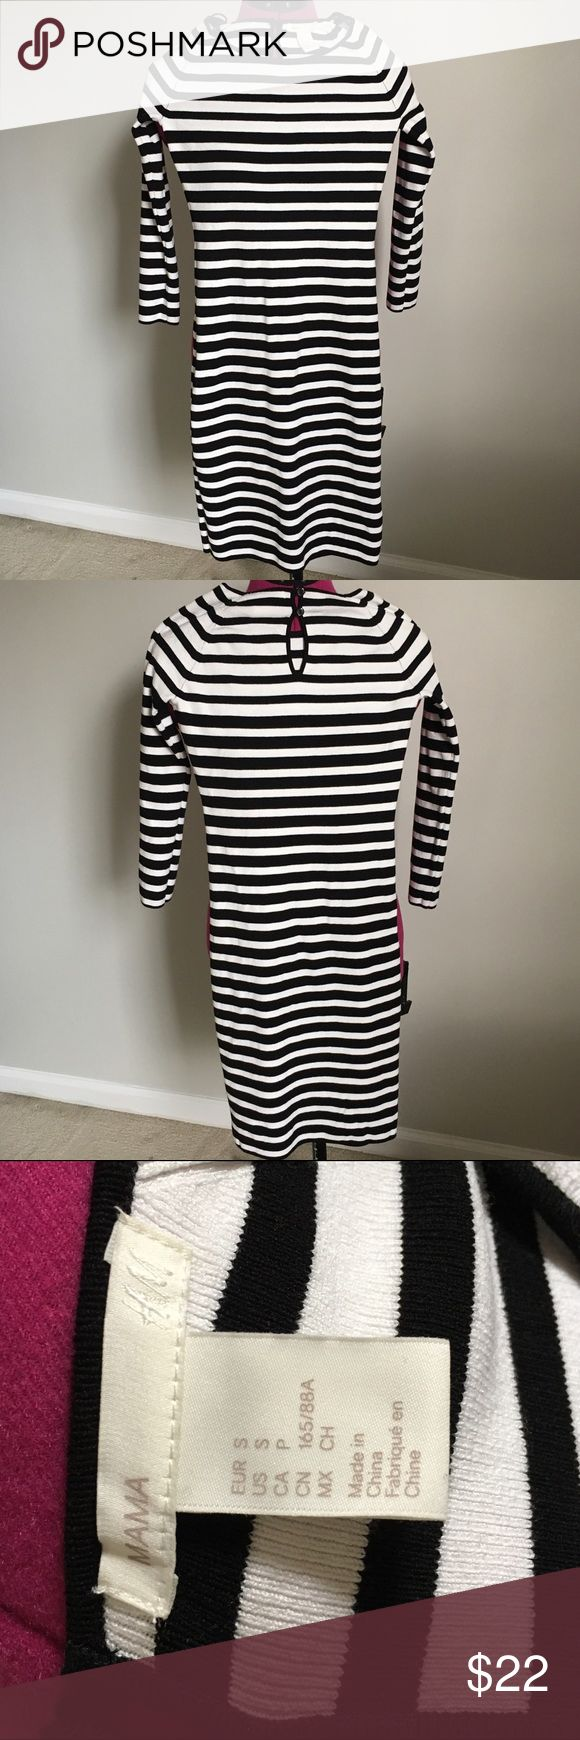 H&M Maternity Dress - S H&M Mama line. Black & white striped, form fitting with stretch from tiny ribbing. 3/4 sleeves. Size S. Can be dressed up or down. Can possibly be worn after pregnancy as well. Worn once. In like new condition. H&M Dresses